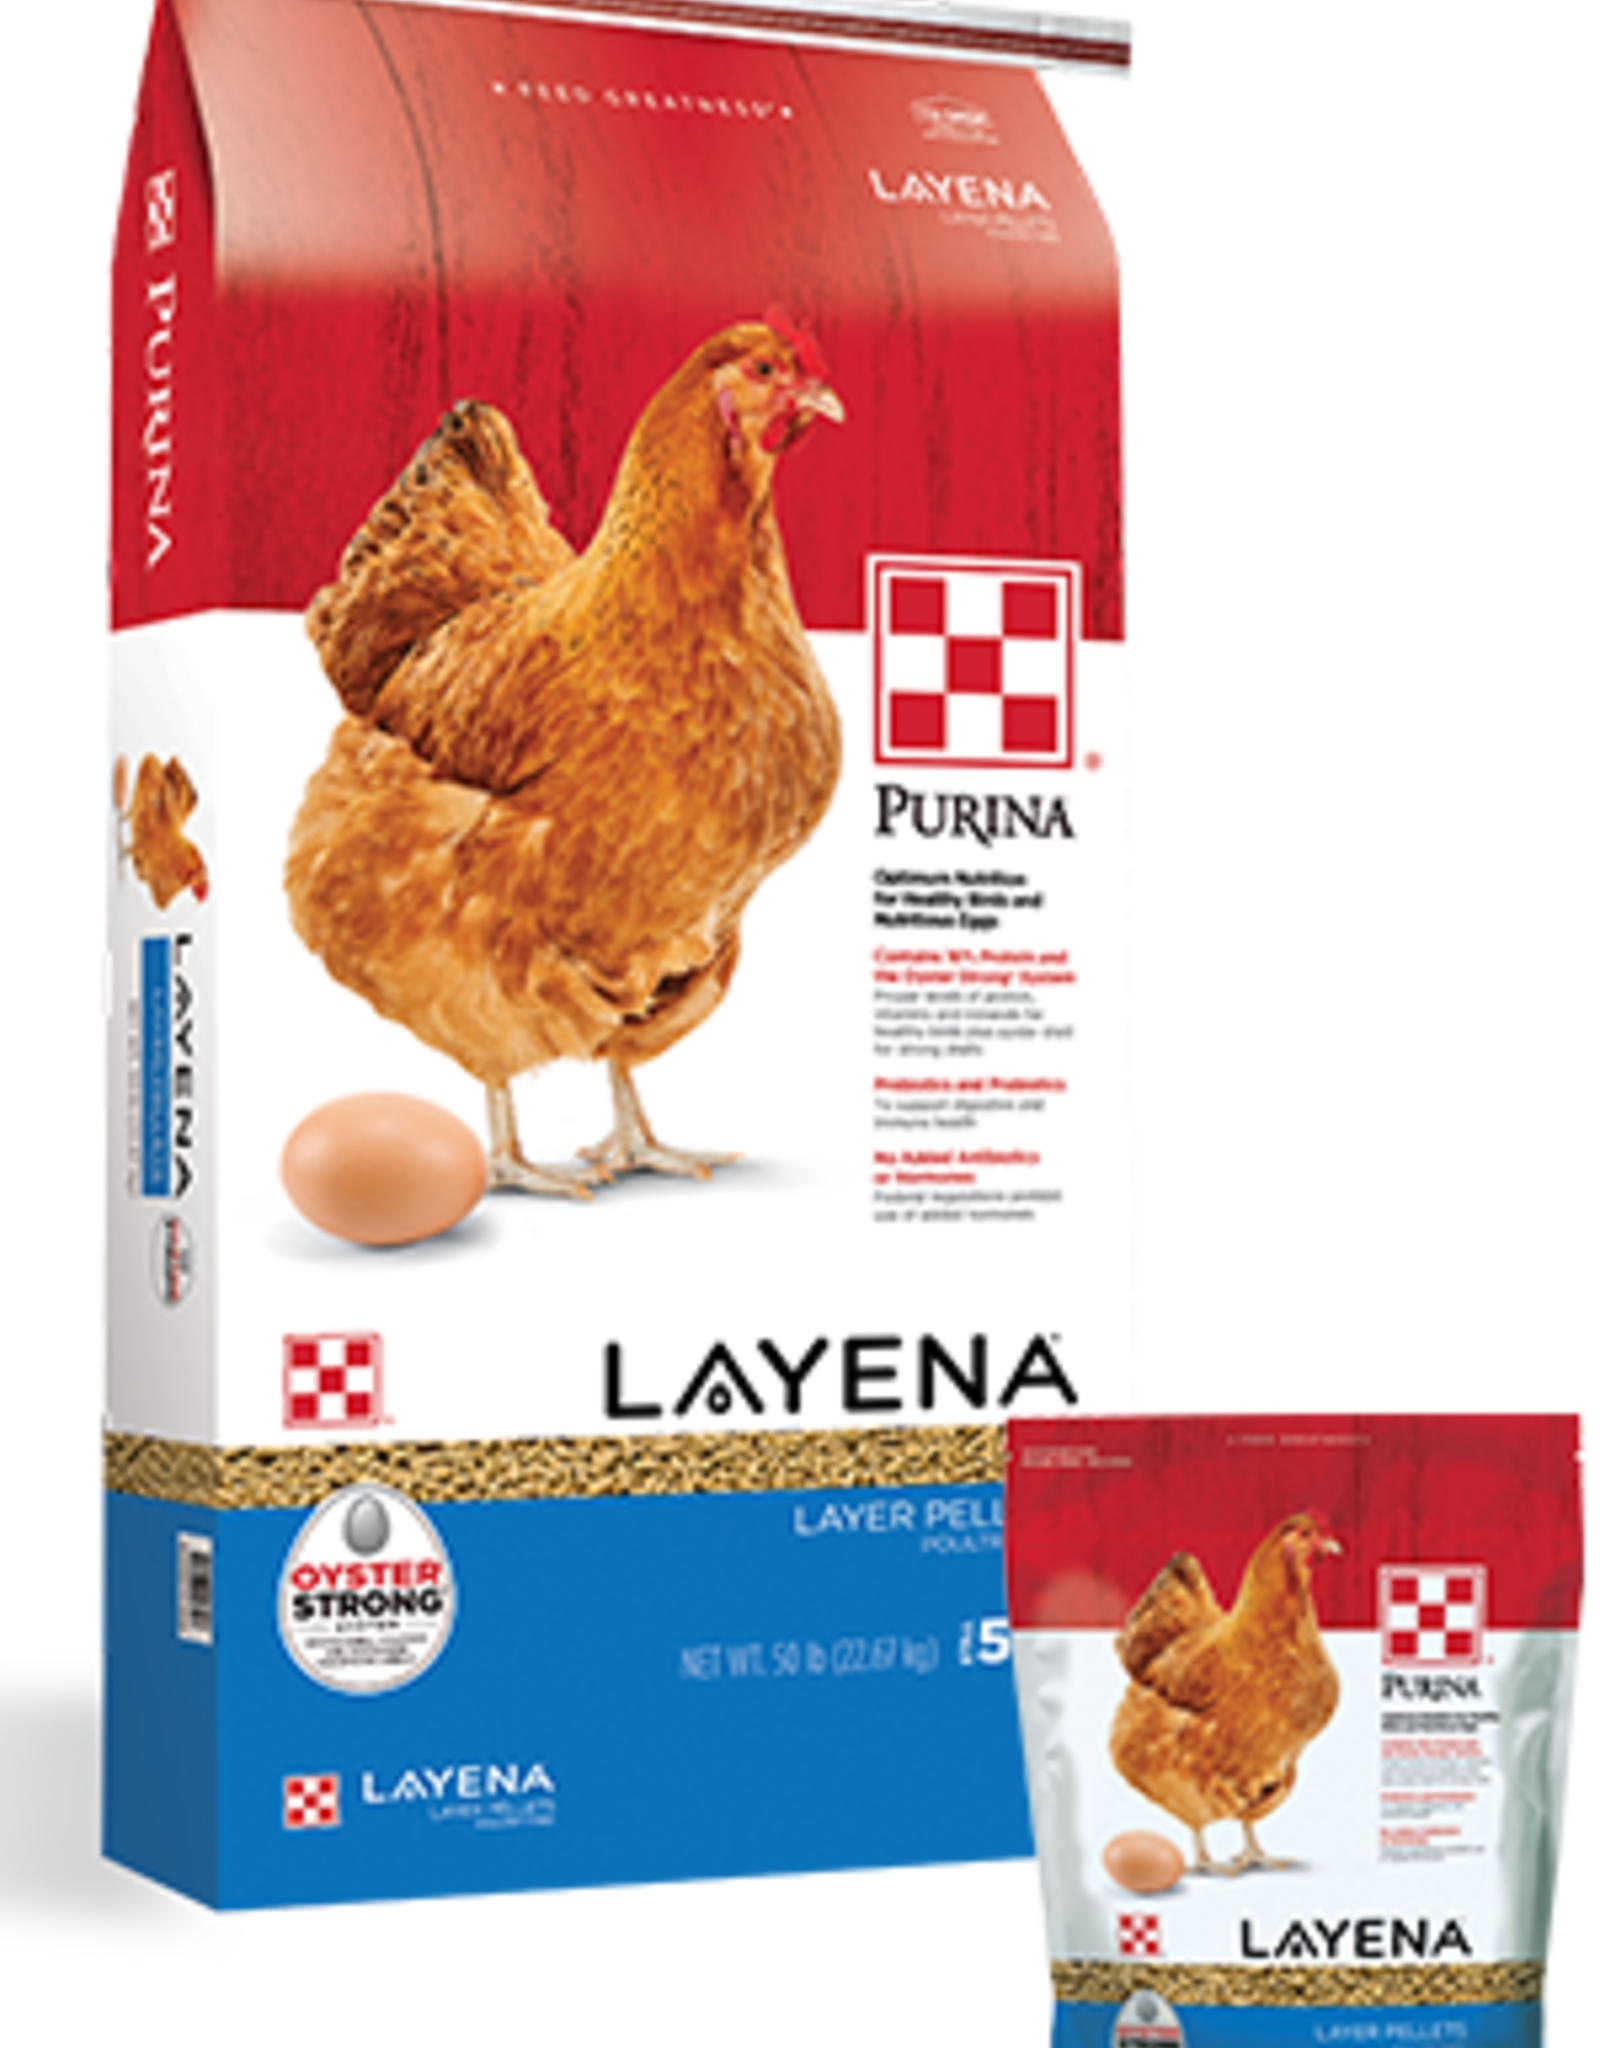 PURINA MILLS, INC. LAYENA PELLETS 50LBS